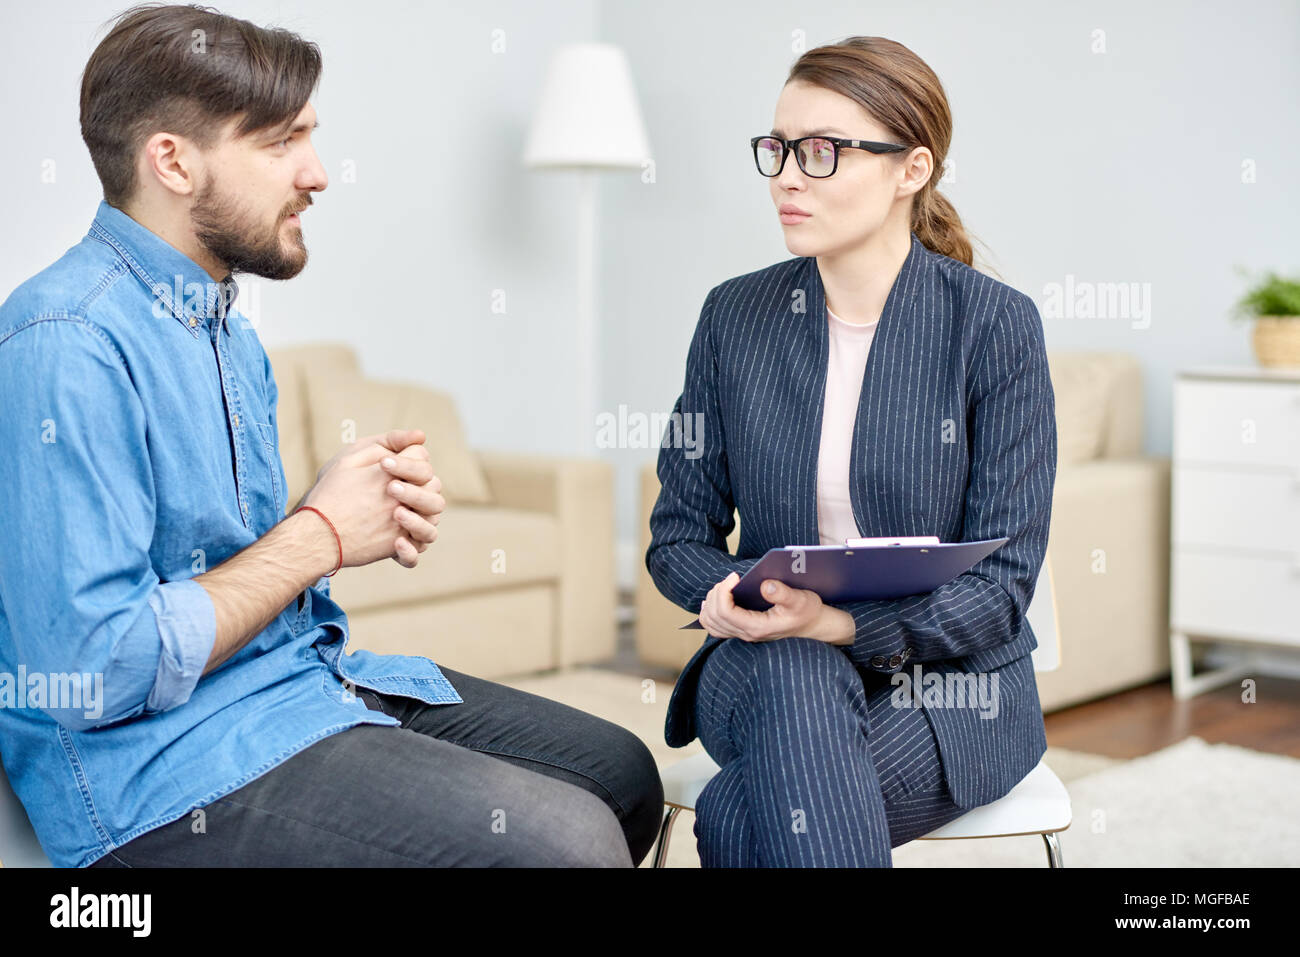 Handsome Bearded Man Suffering From Depression Having Consultation